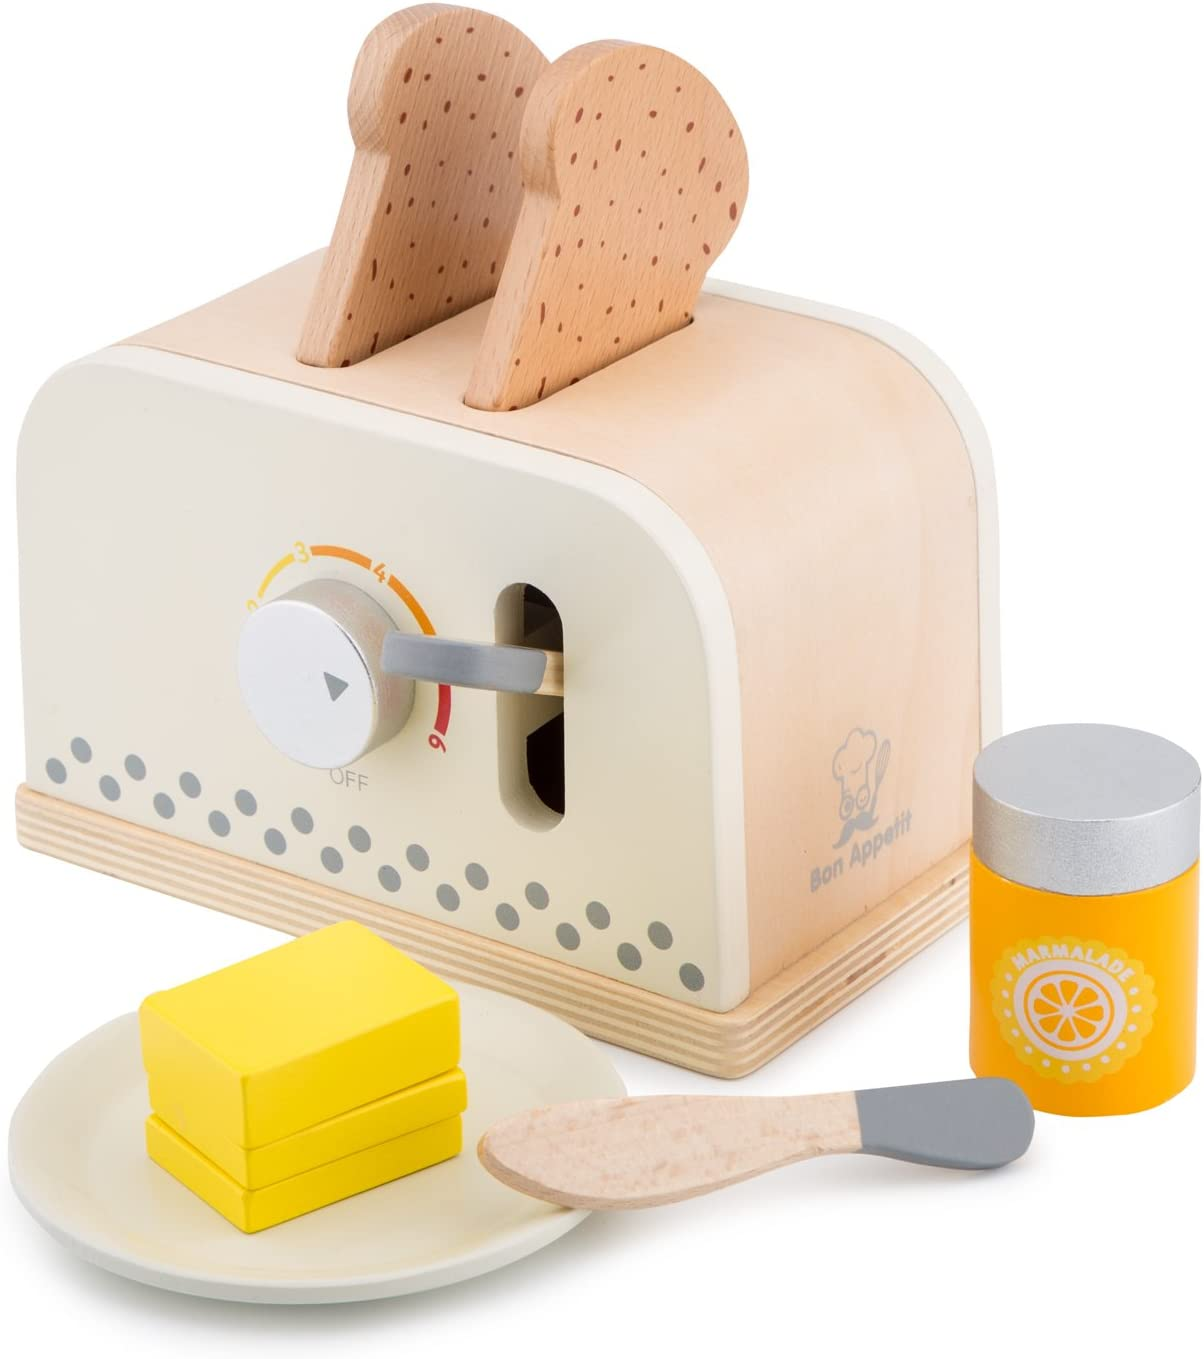 New Classic Toys Wooden Toaster Set Pretend Play Toy for Kids Cooking Simulation Educational Toys and Color Perception Toy for Preschool Age Toddlers Boys Girls